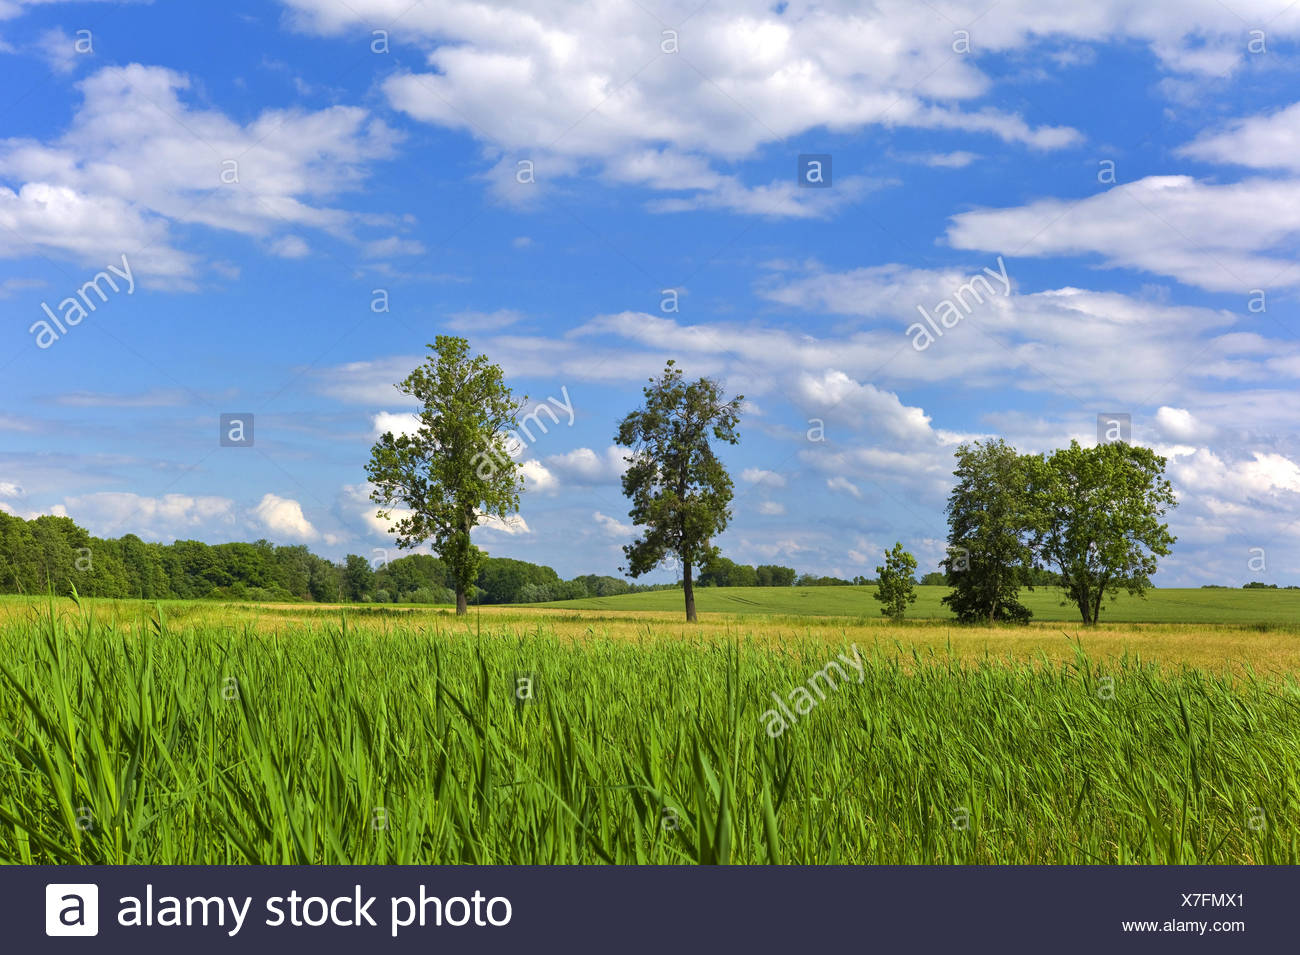 reed belt and single trees in summerly field scenery, Germany, Mecklenburg-Western Pomerania, Roebel - Stock Image